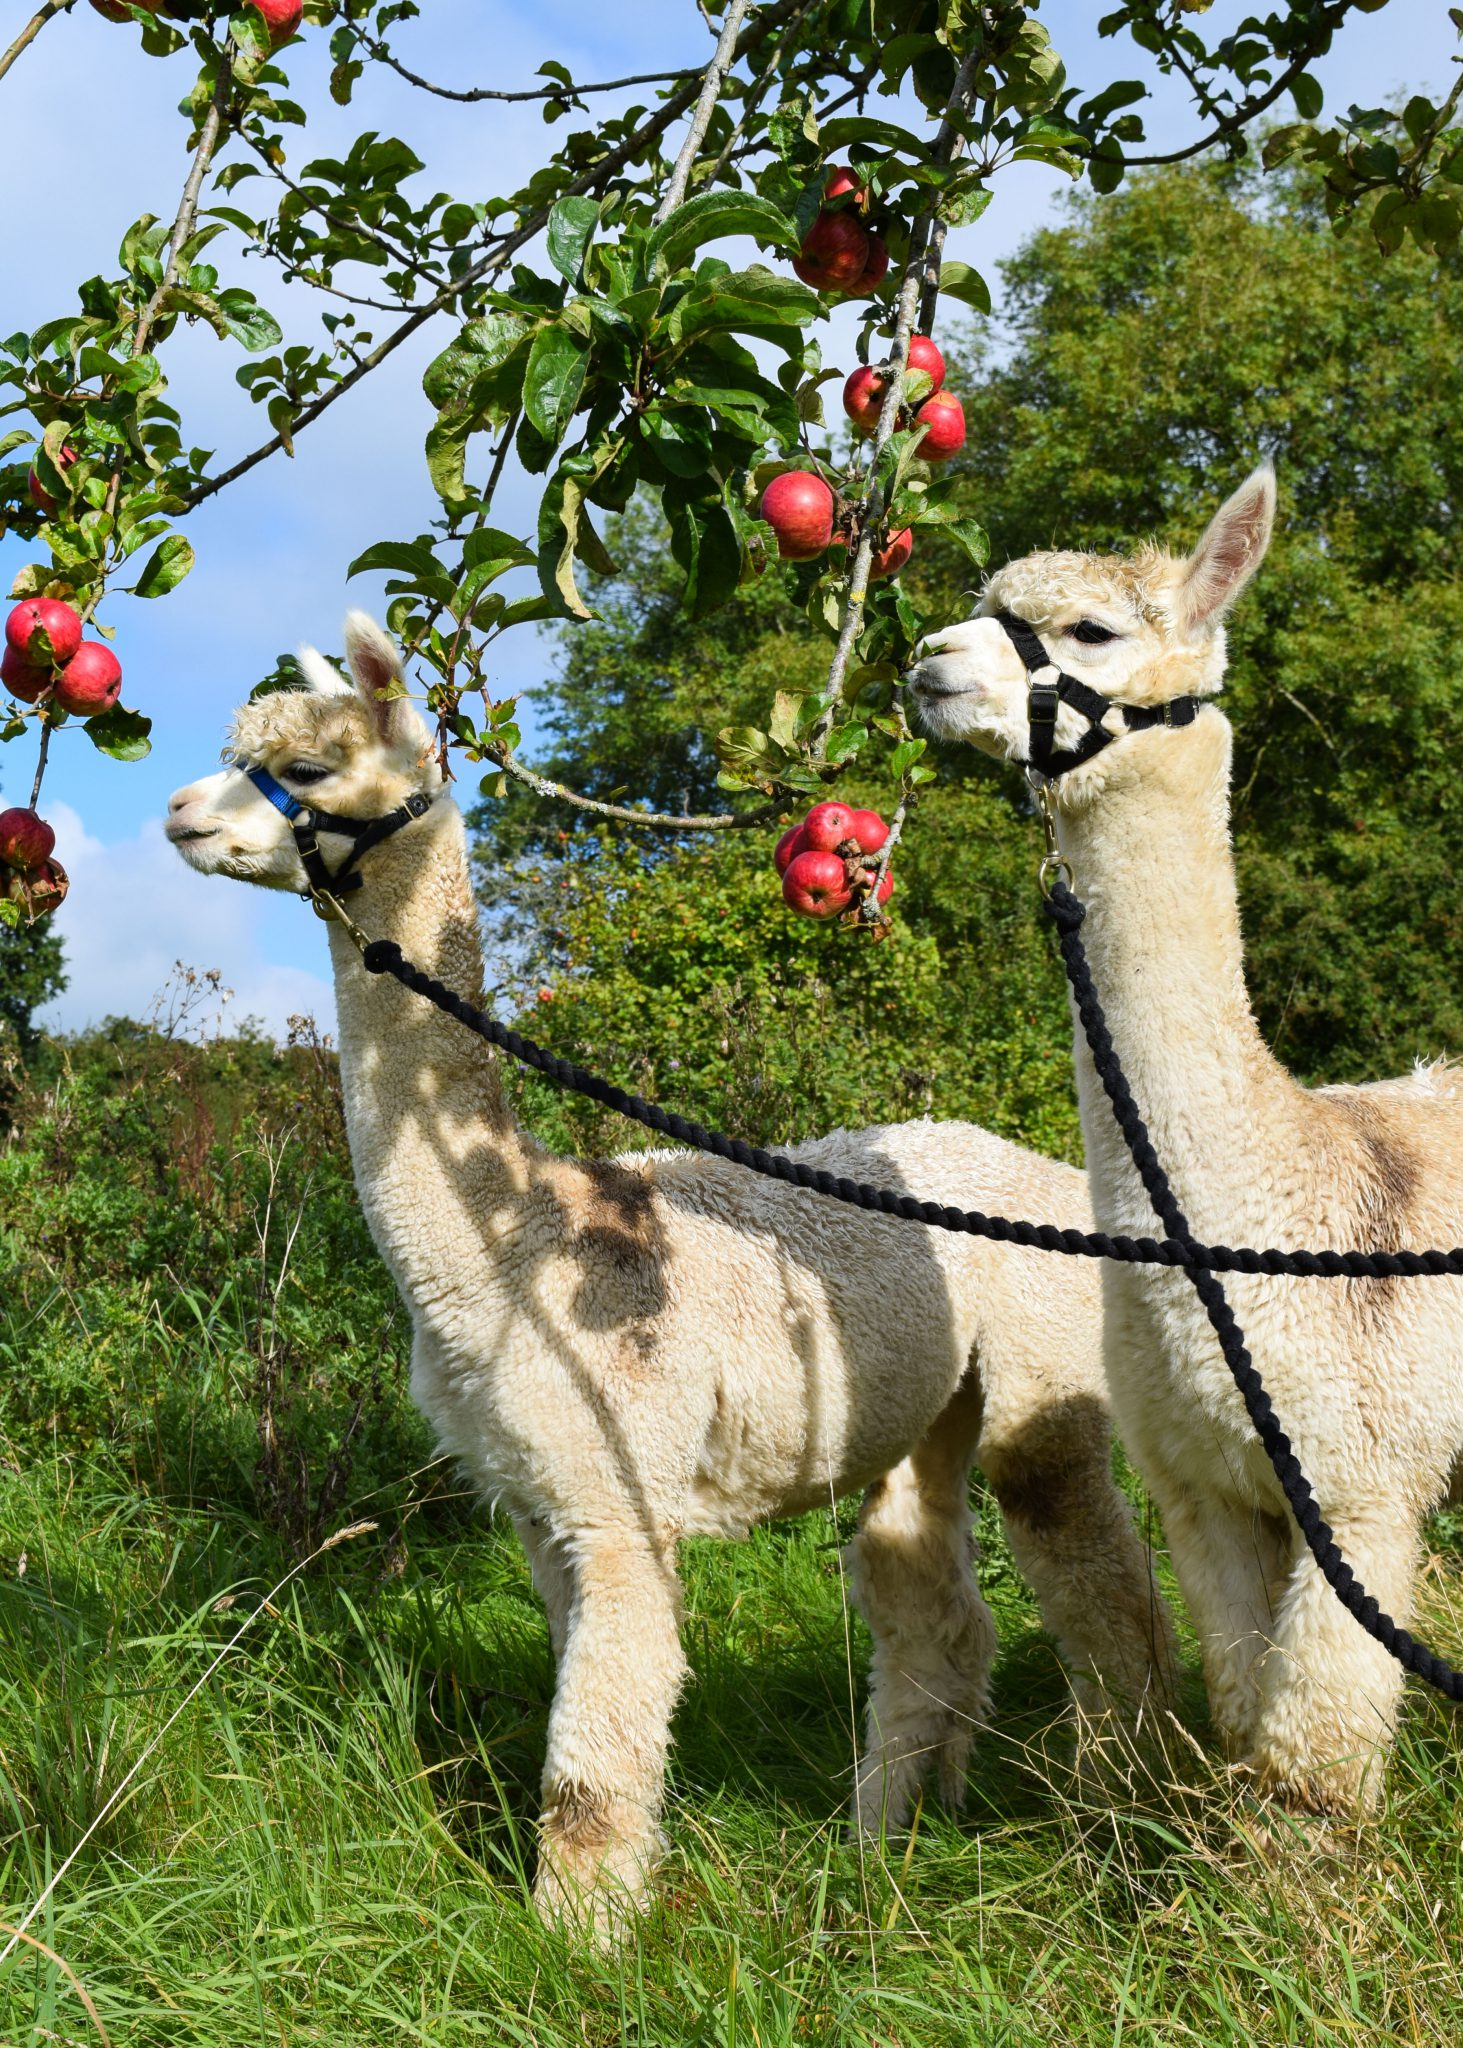 Two alpacas eating apples from a tree branch in the Little Orchard Alpacas field